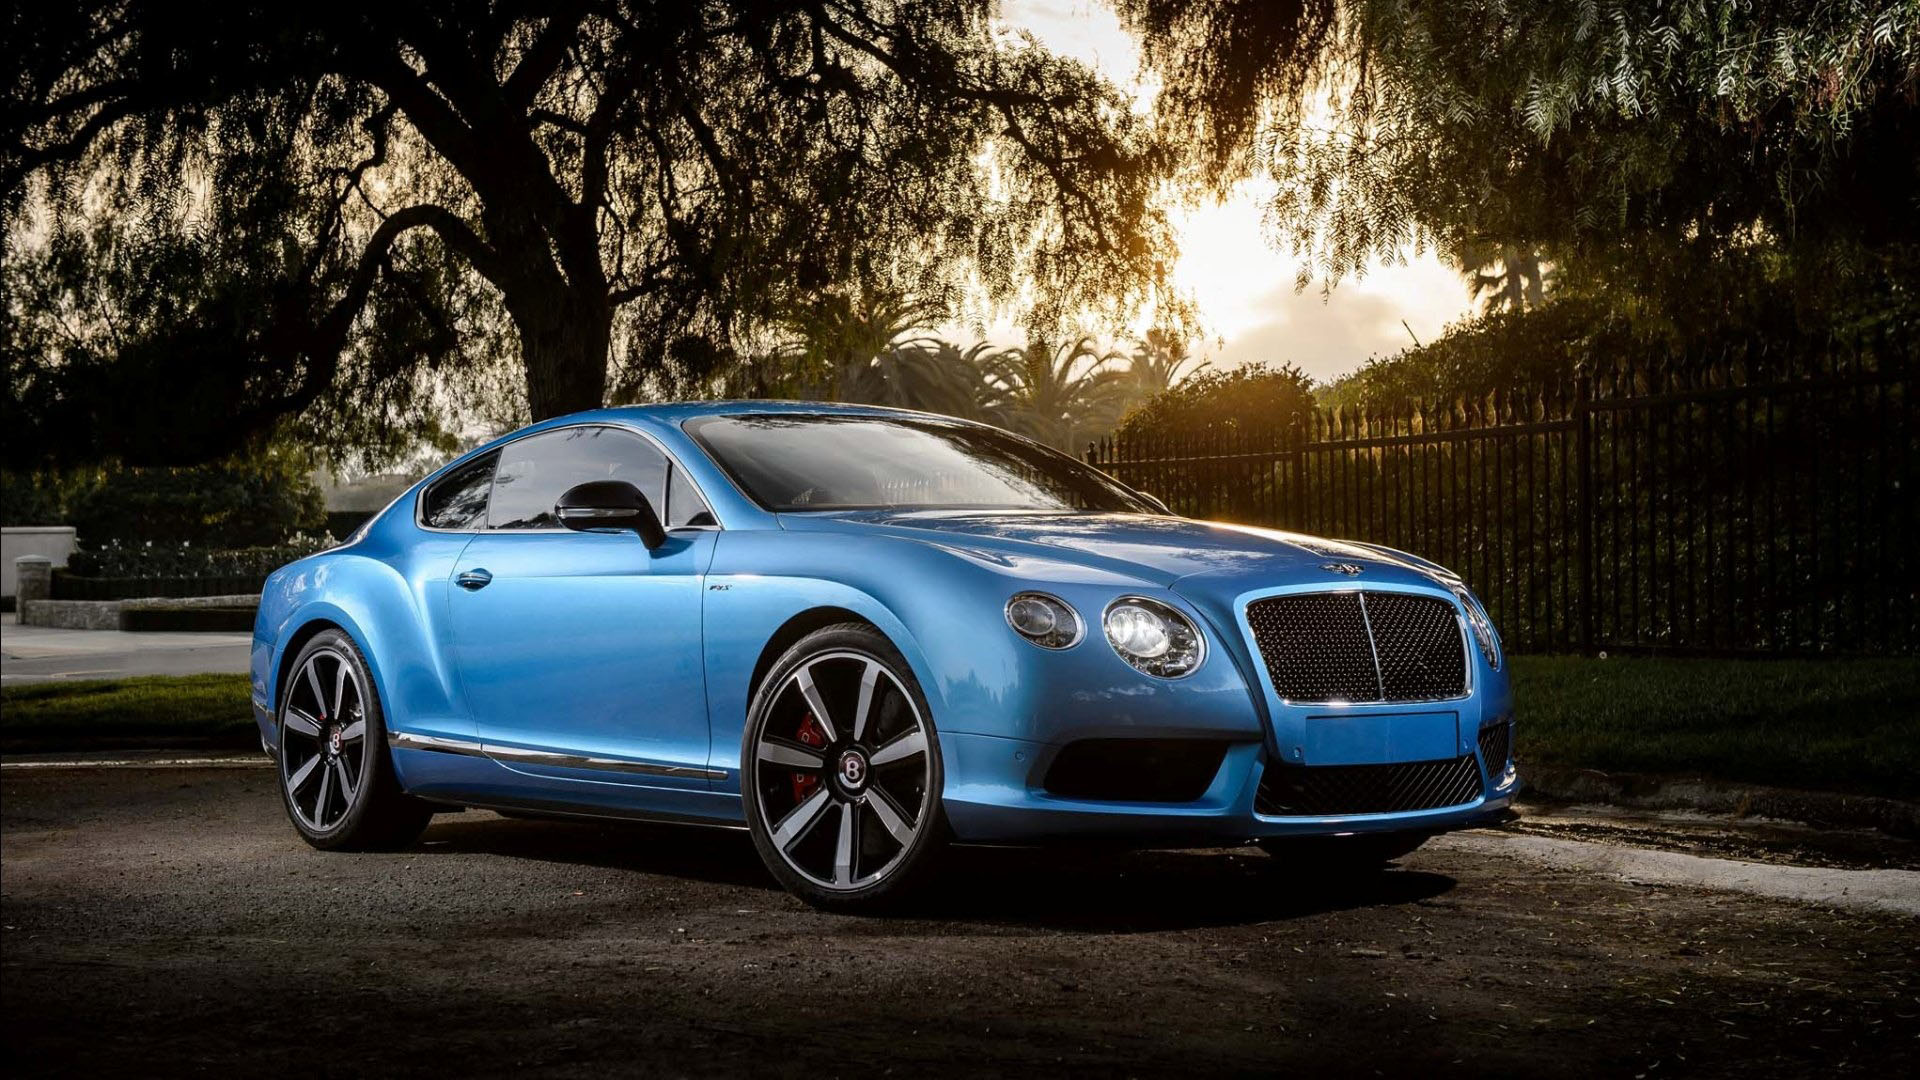 blue bentley continental gt wallpaper hd 48792 1920x1080